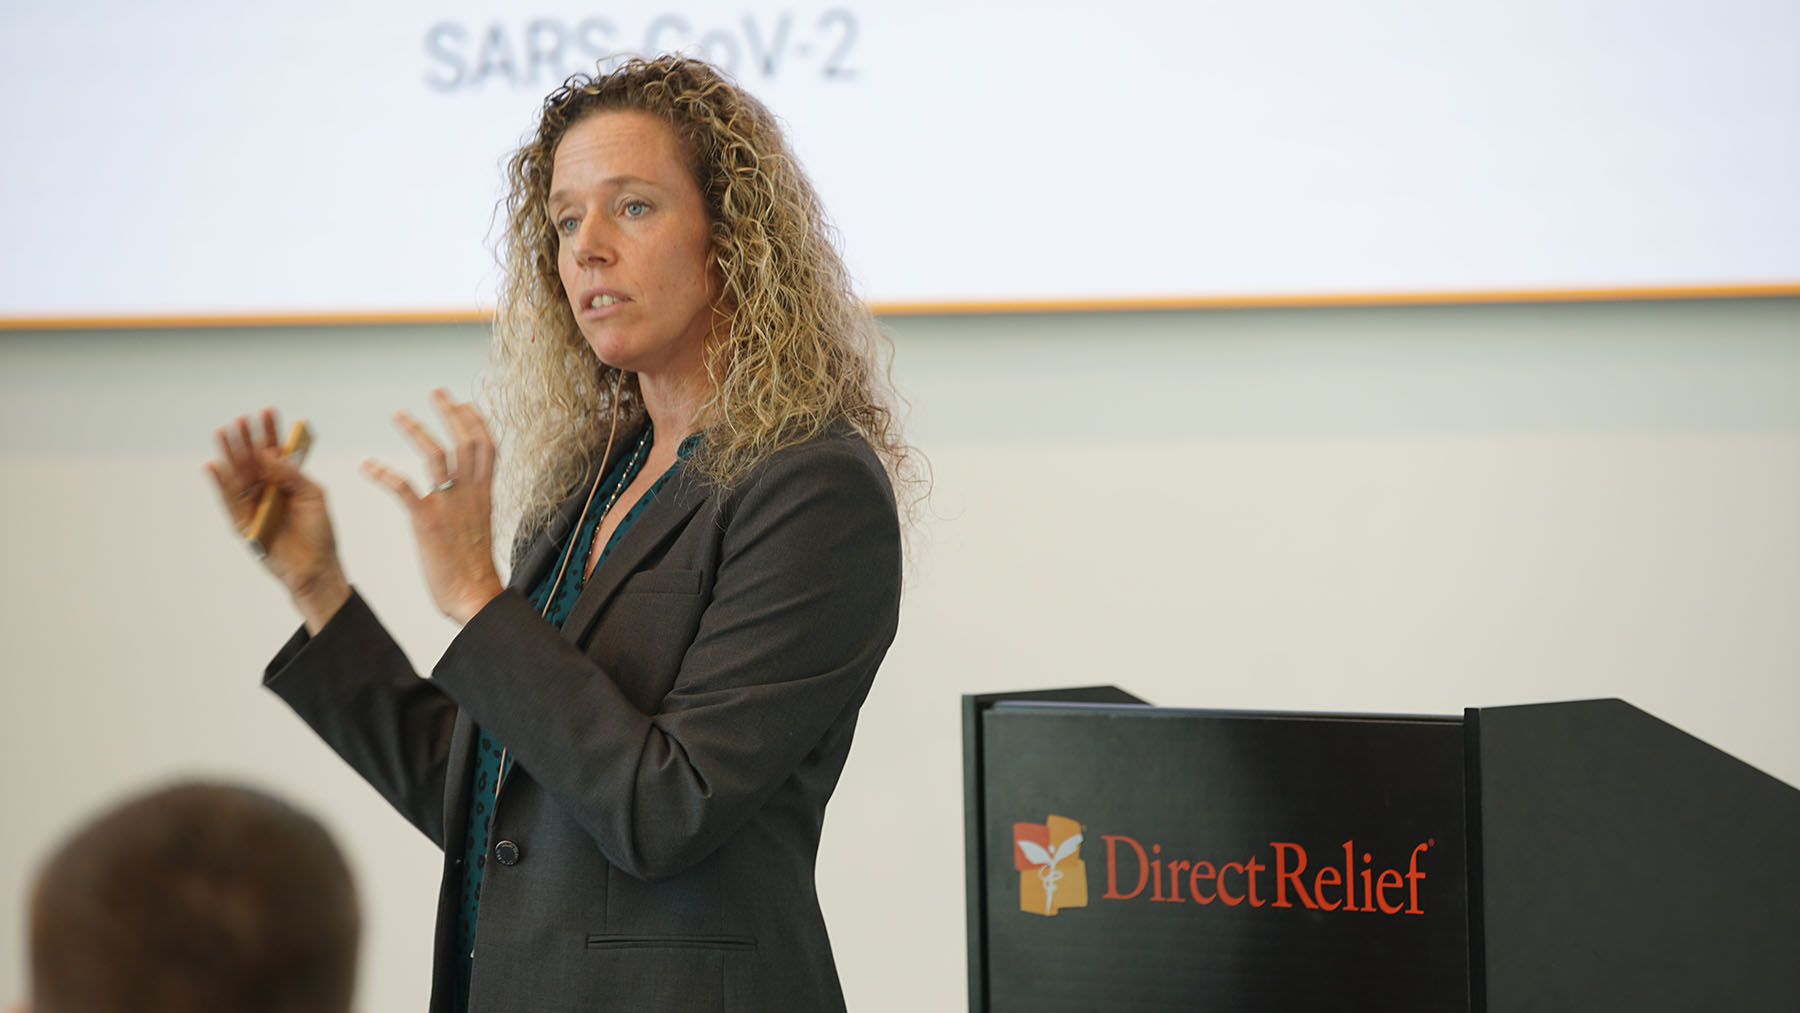 Dr. Lynn Fitzgibbons speaks at Direct Relief's headquarters on March 5, 2020, about the coronavirus outbreak. (Lara Cooper/Direct Relief)